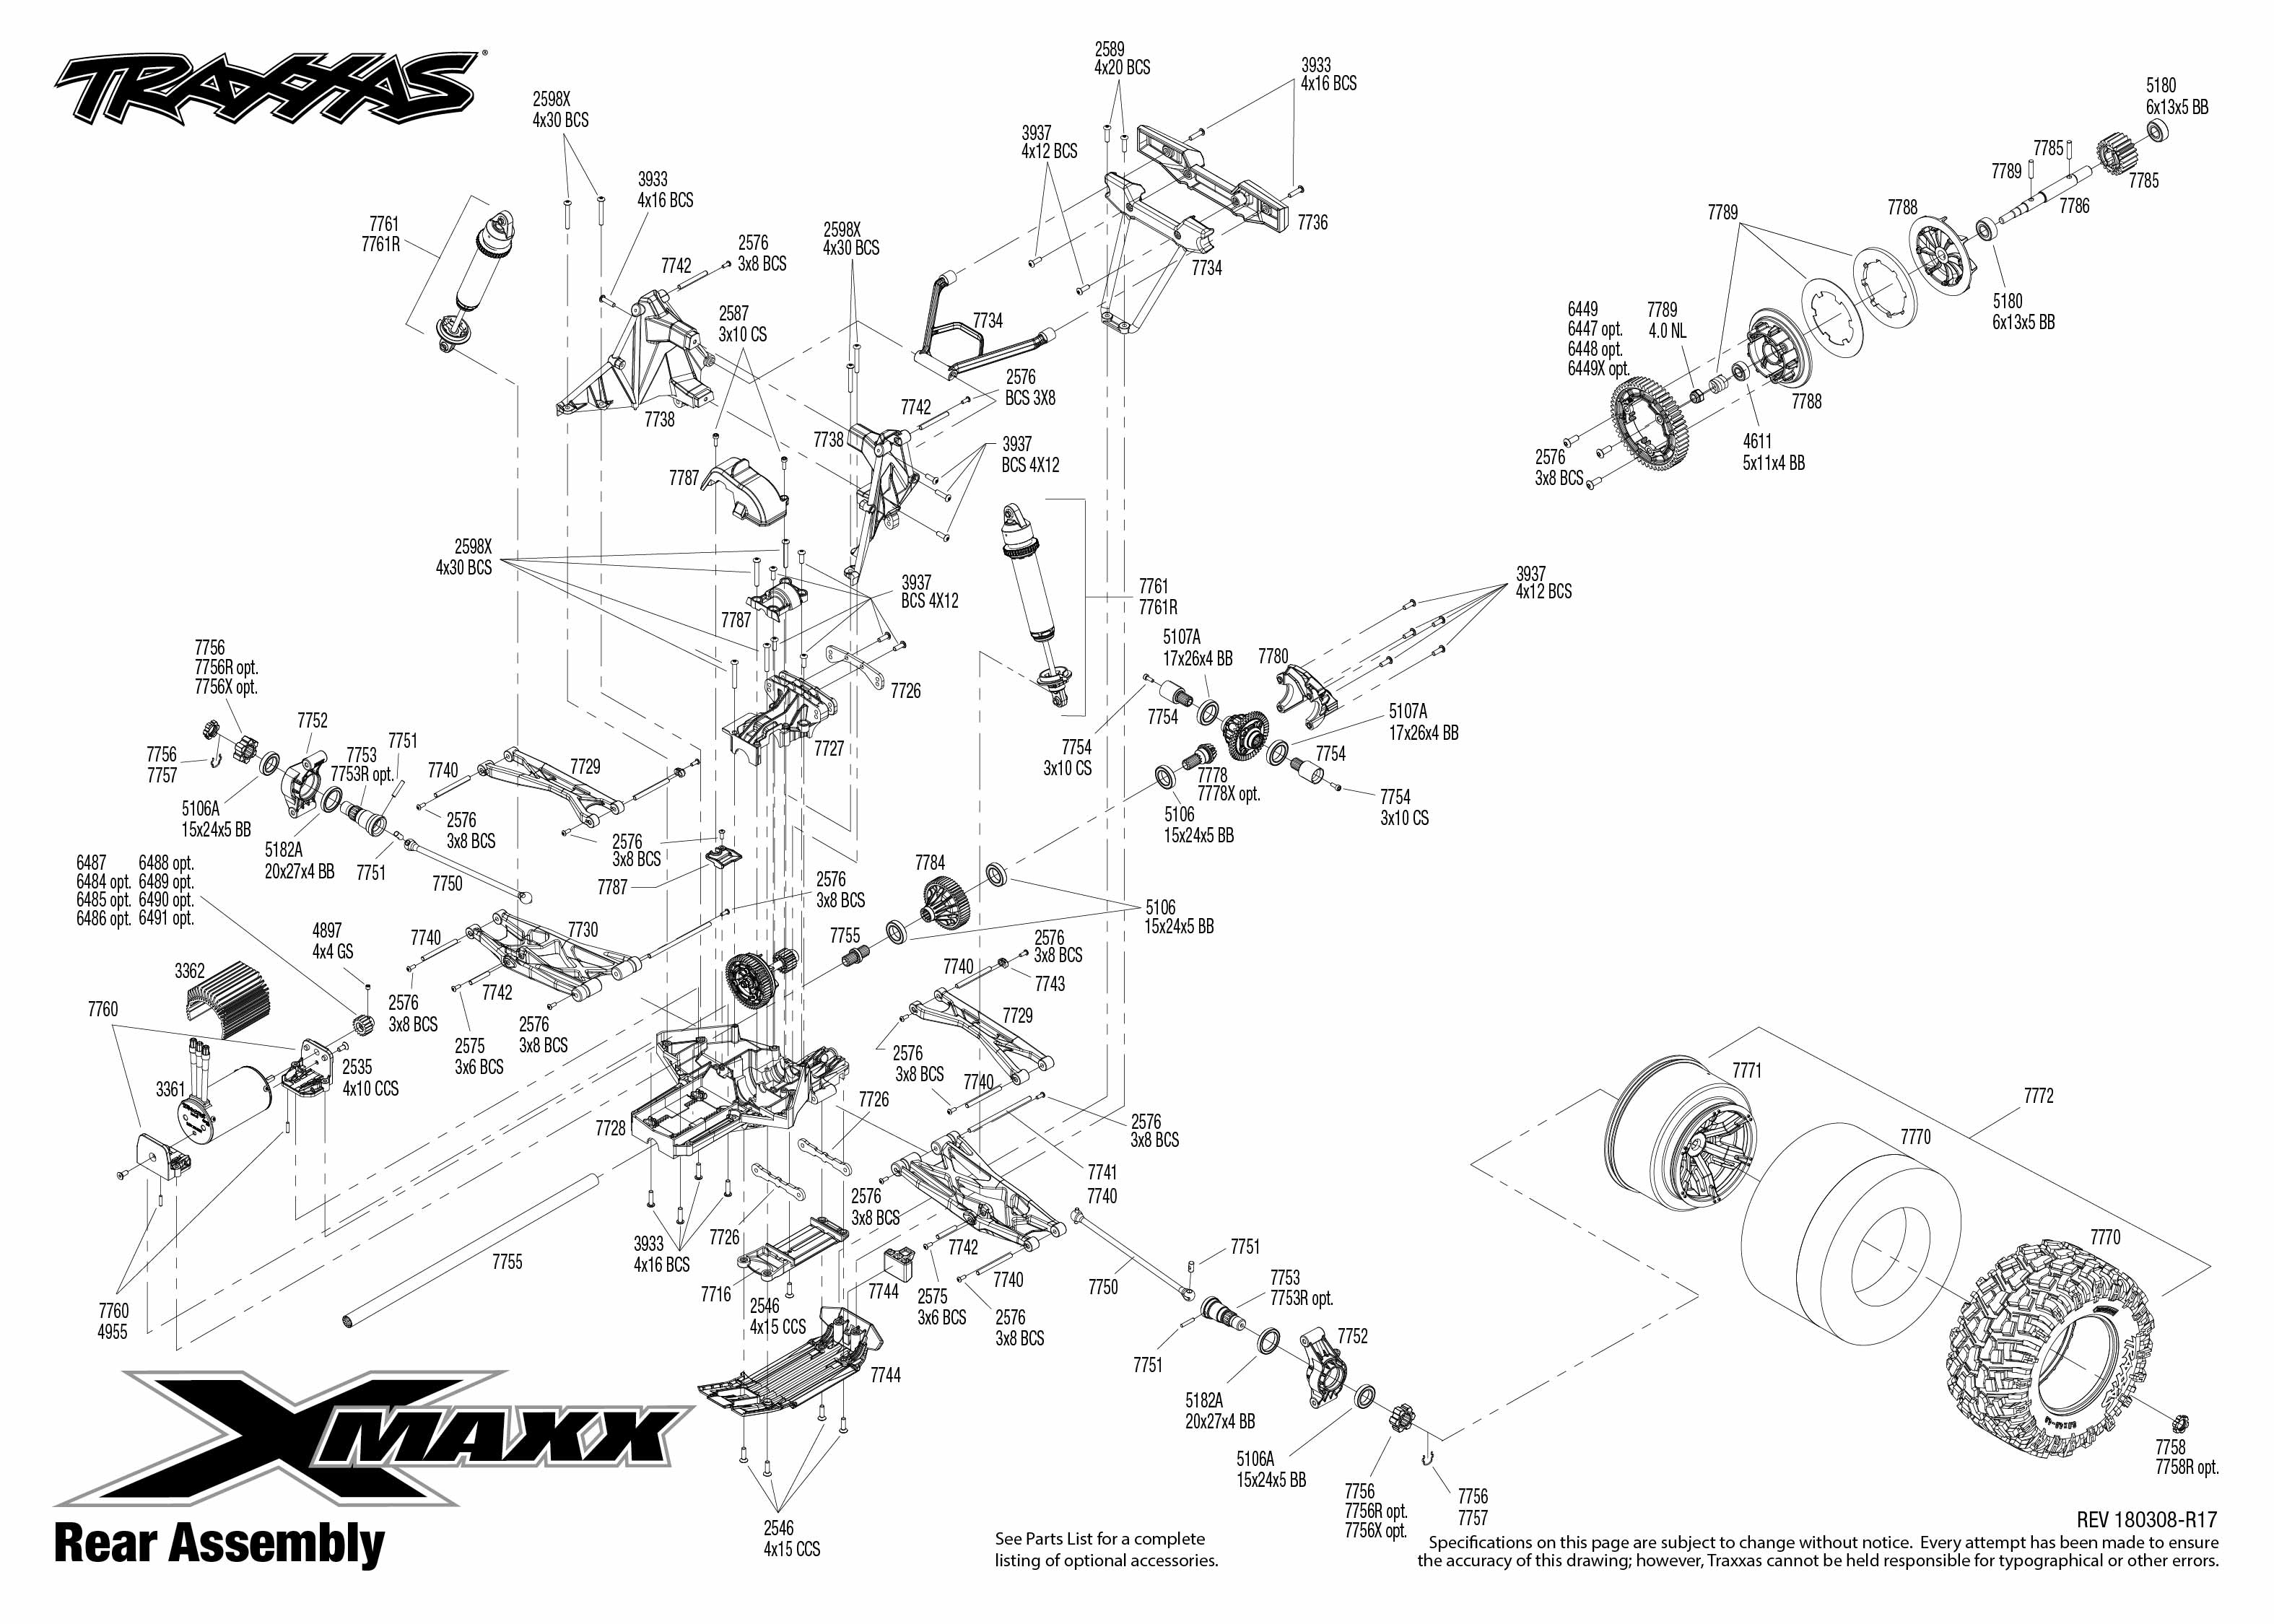 traxxas t maxx 3 parts diagram pontiac sunfire stereo wiring x 77076 4 rear assembly exploded view